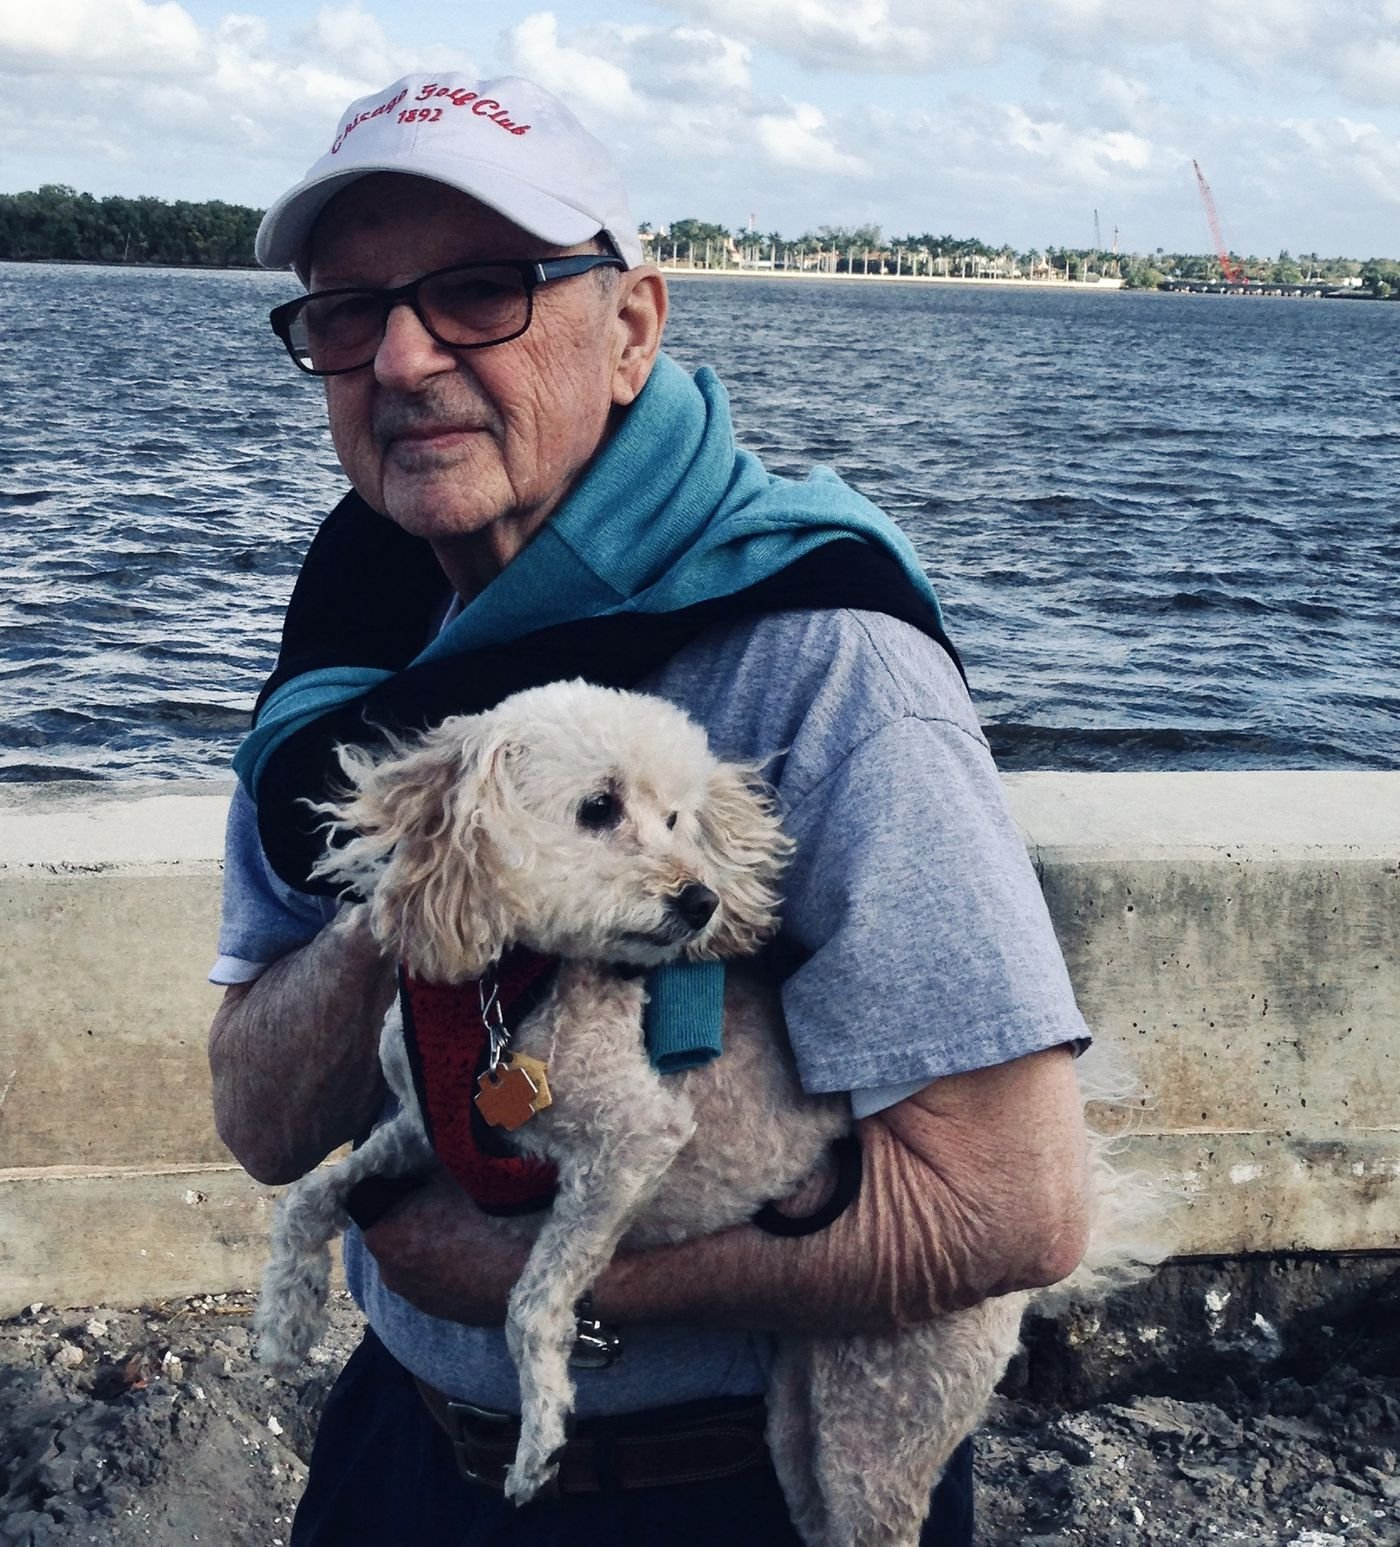 Bill Hession and his dog, Veronica, in Florida, on Jan. 22, 2019.